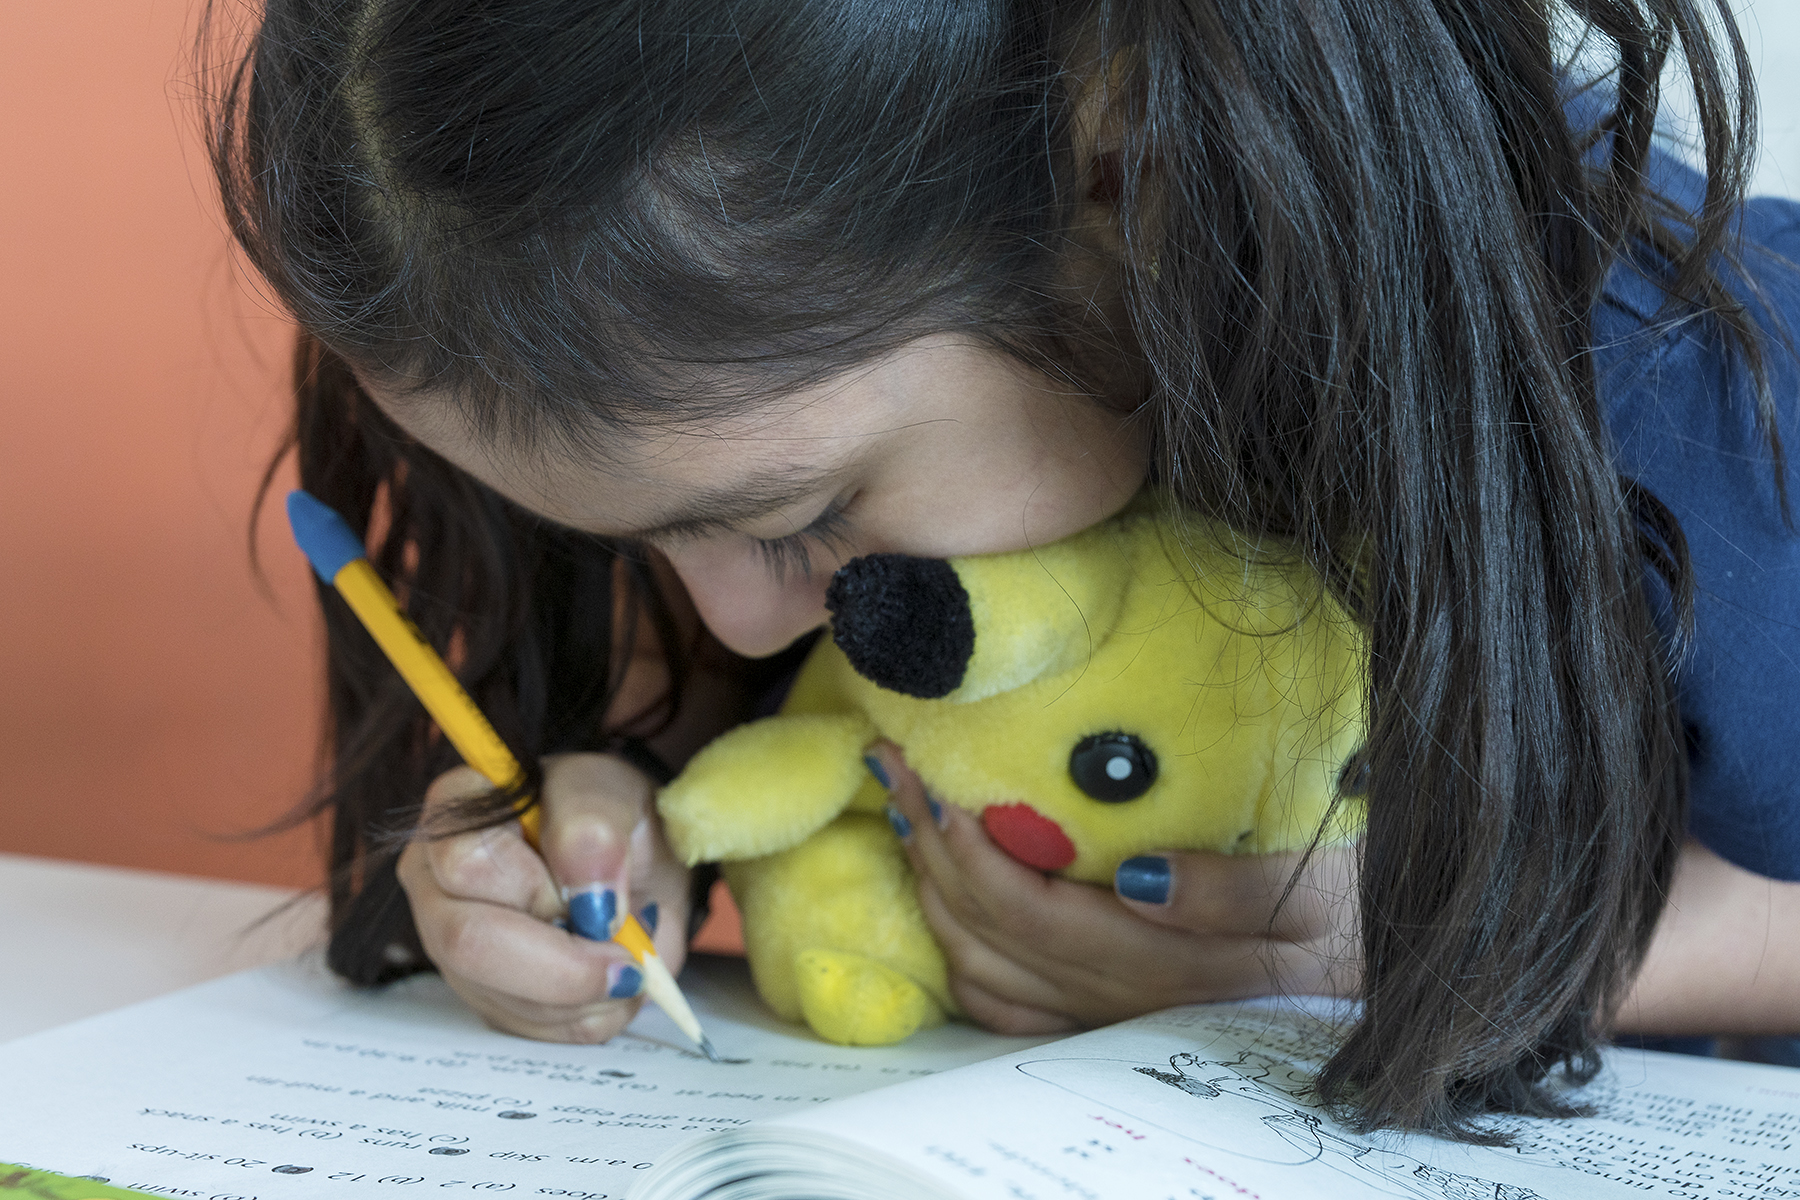 A student works in her workbook.